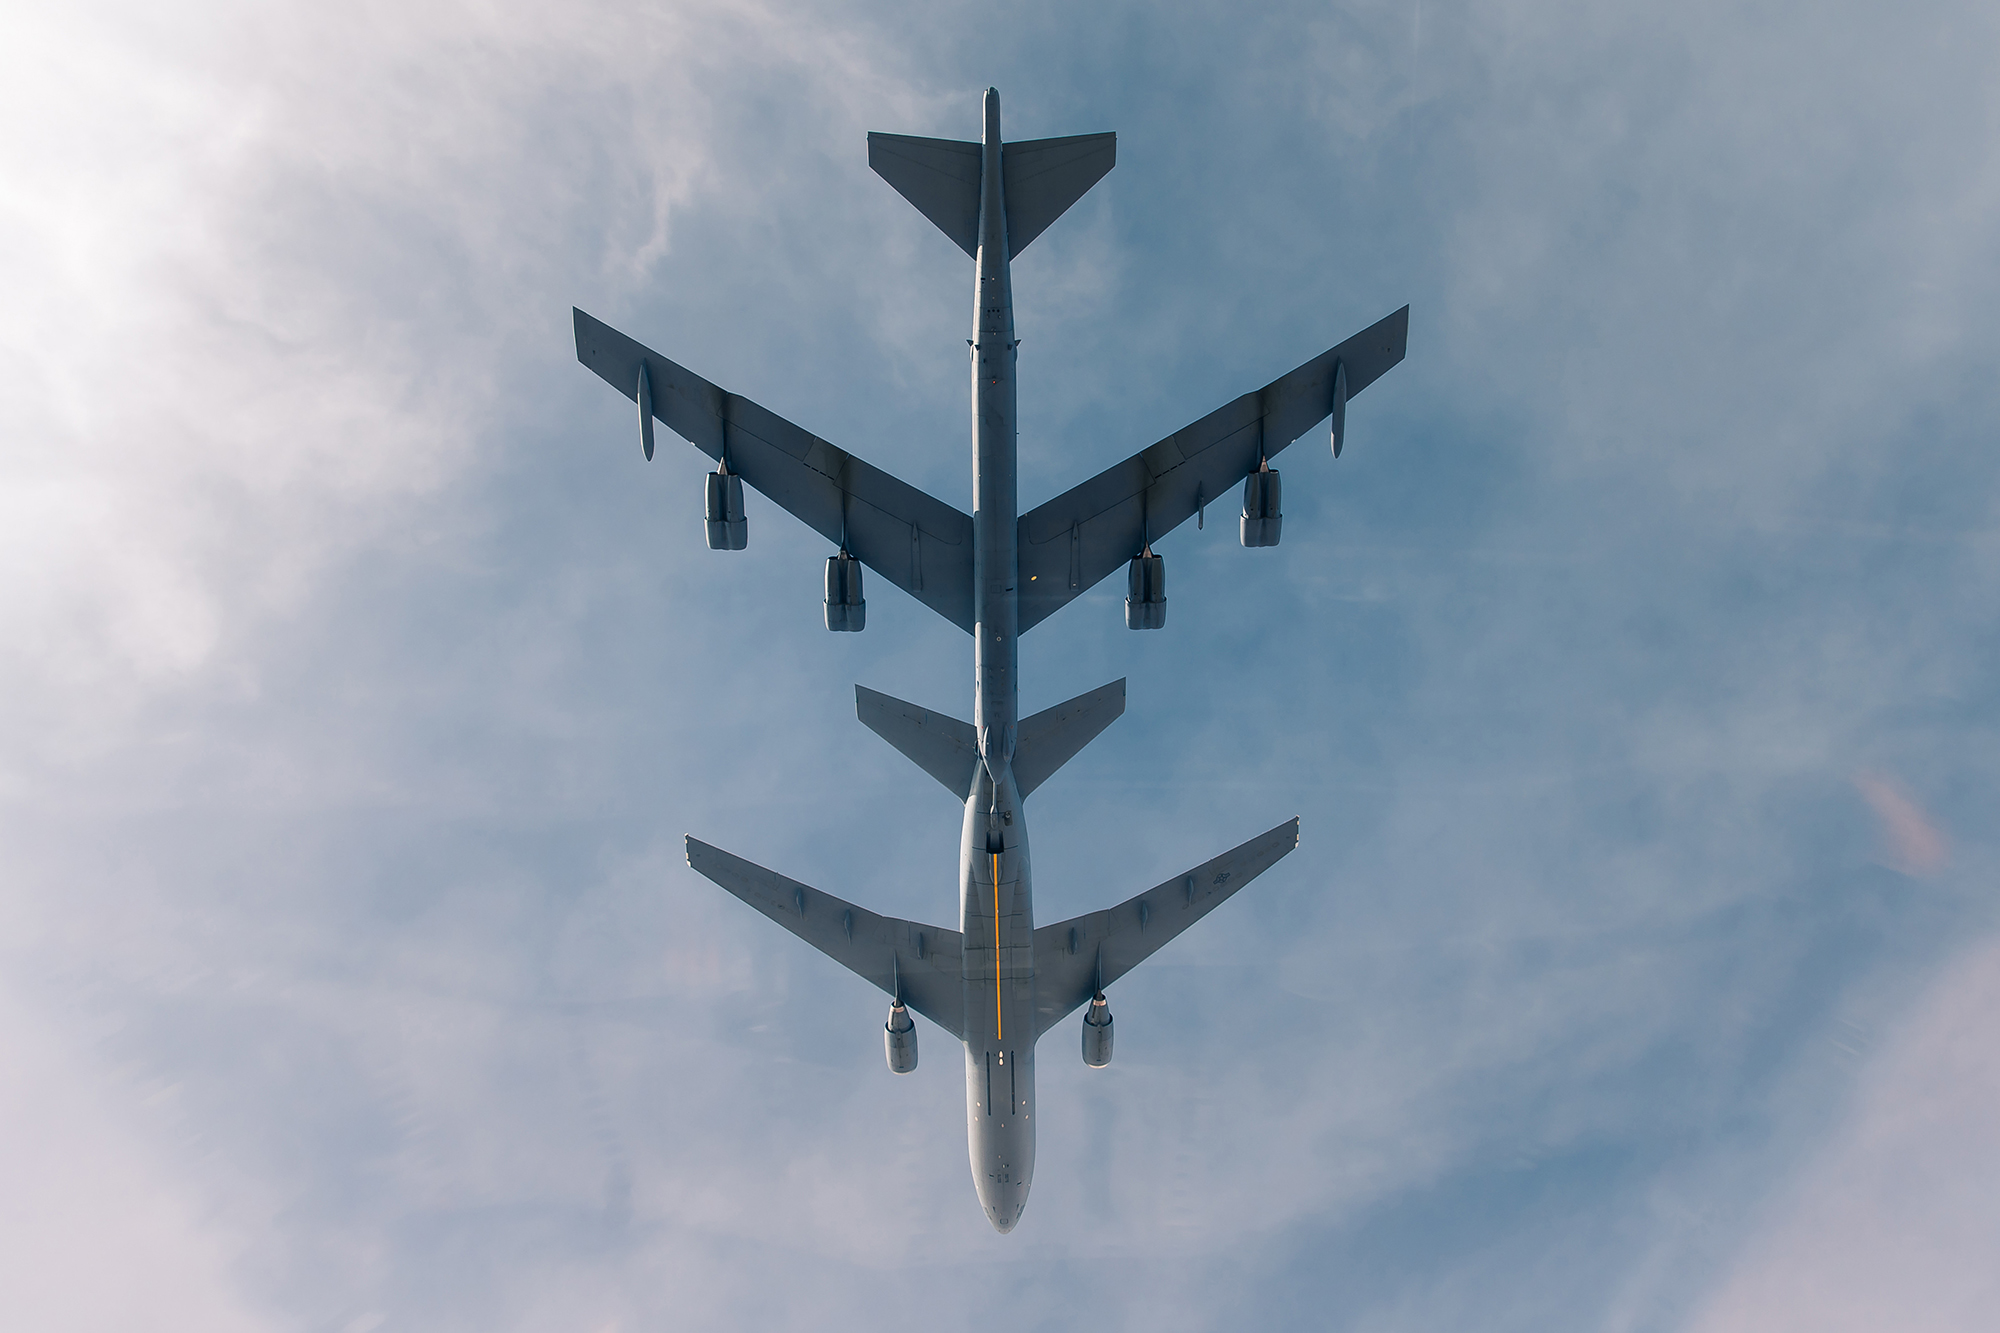 A U.S. Air Force B-52 Stratofortress receives fuel from a KC-10 Extender during a bomber task force mission over the U.S. Central Command area of responsibility Jan. 27, 2021. (Staff Sgt. Trevor T. McBride/Air Force)